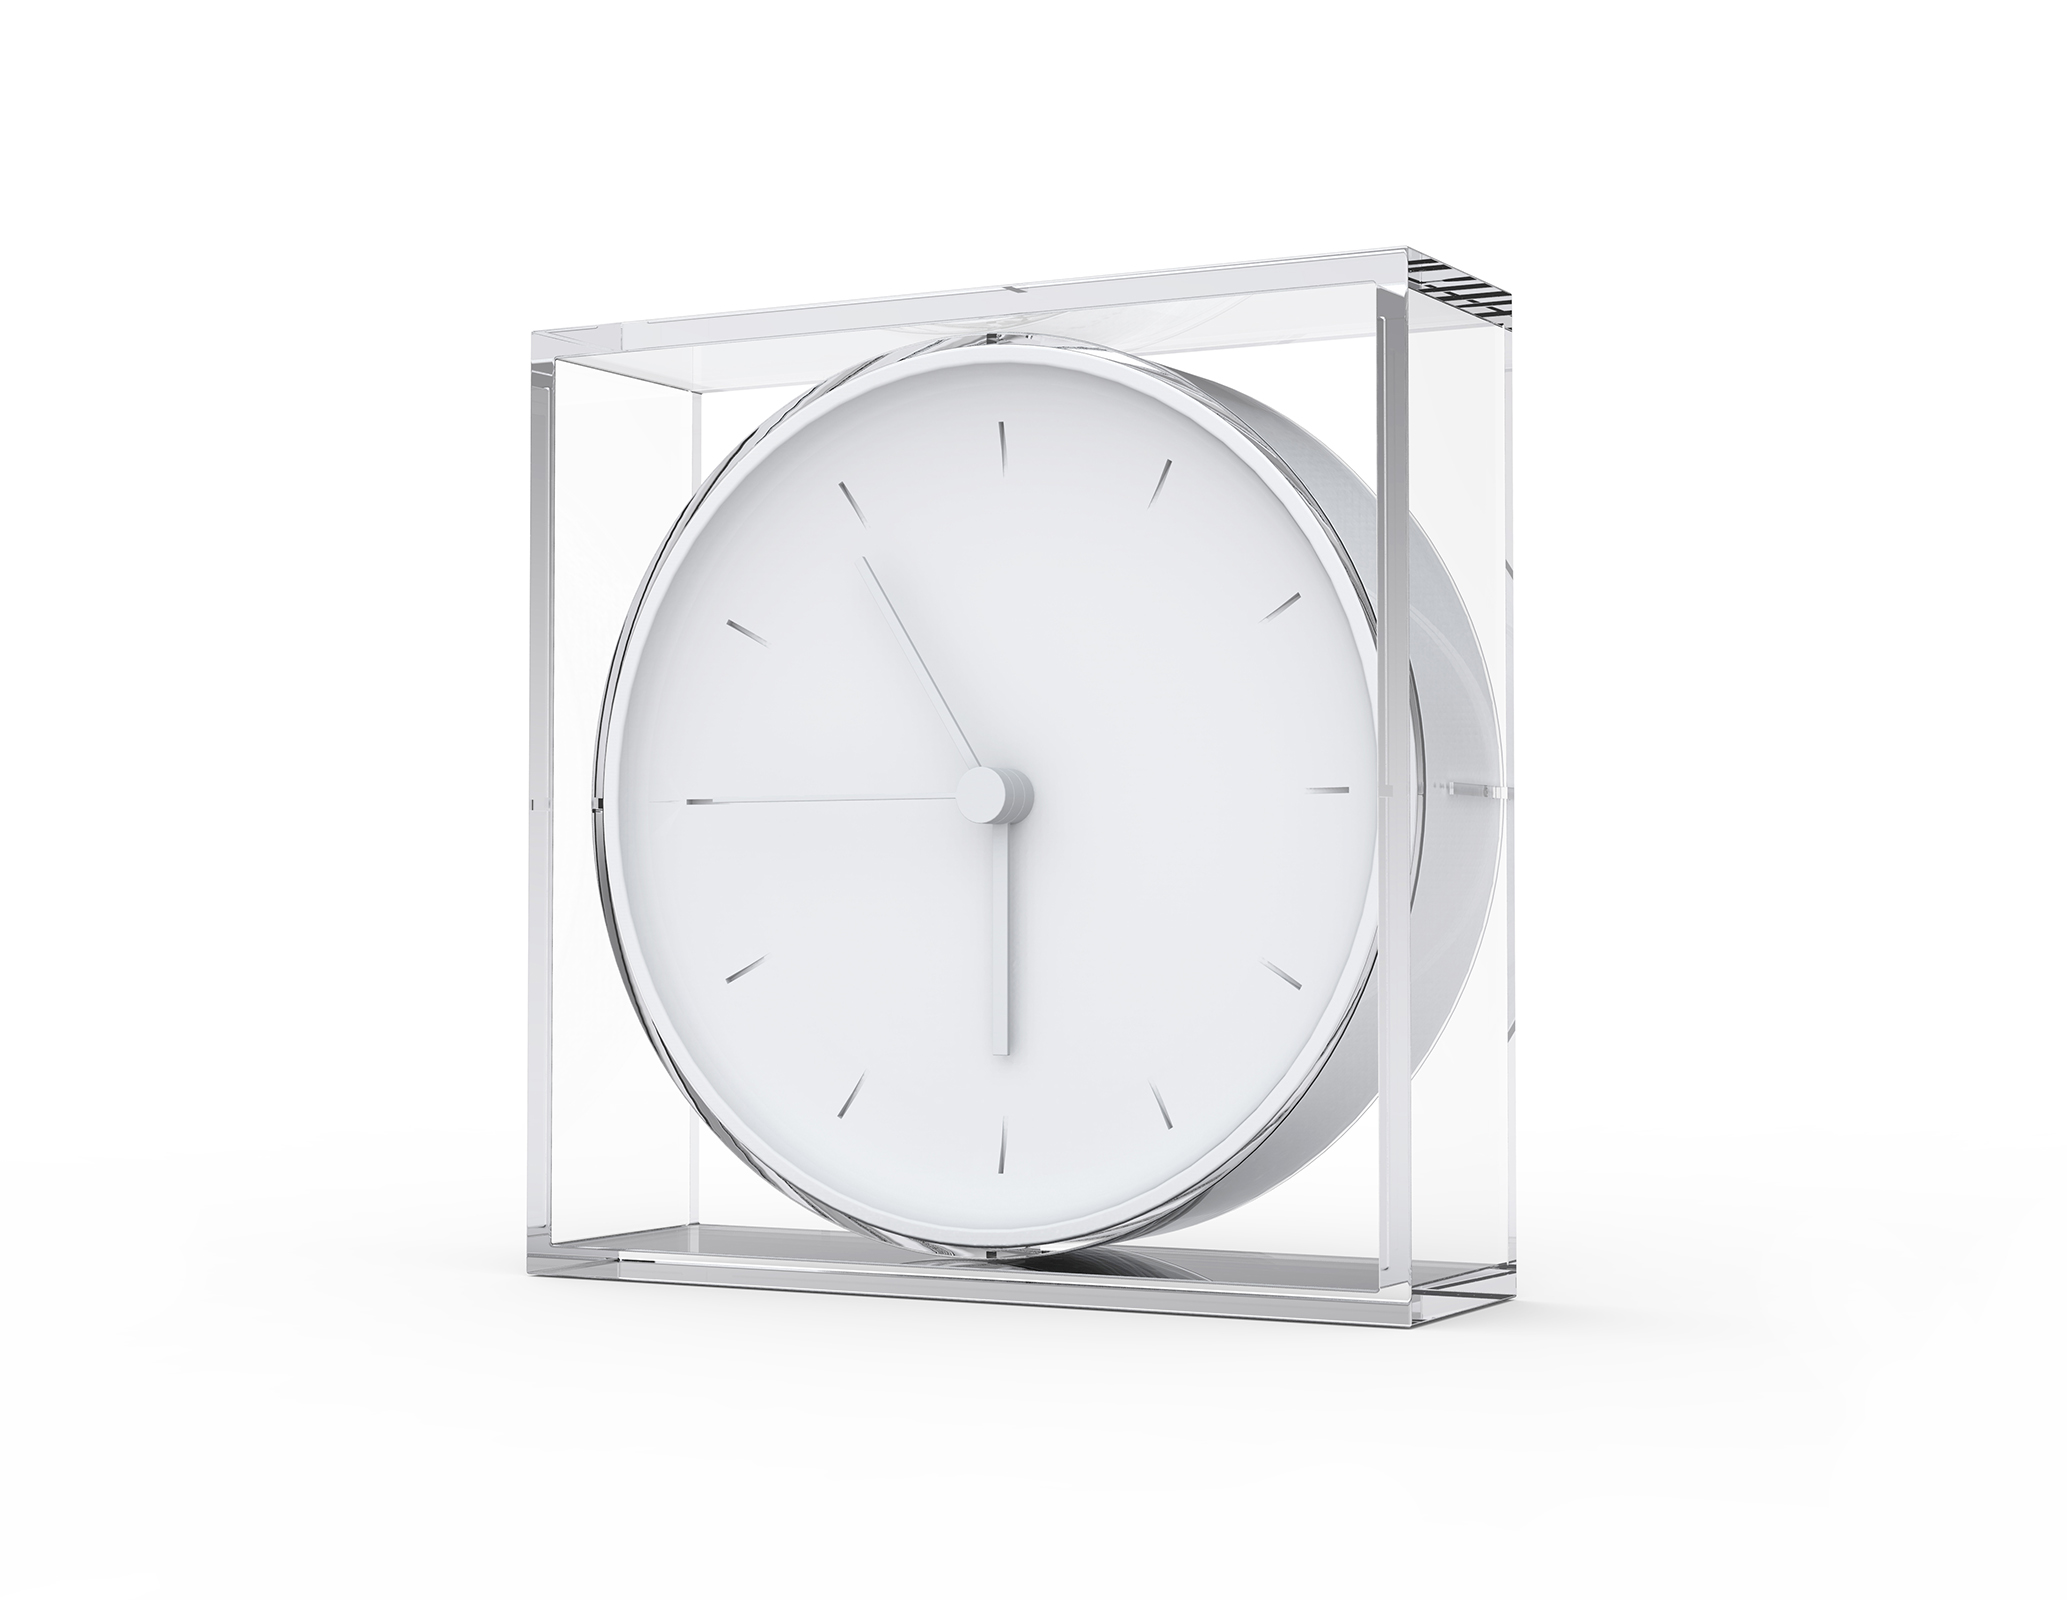 2015-12-10 LEXON VOID TIME packaging renders.2471b